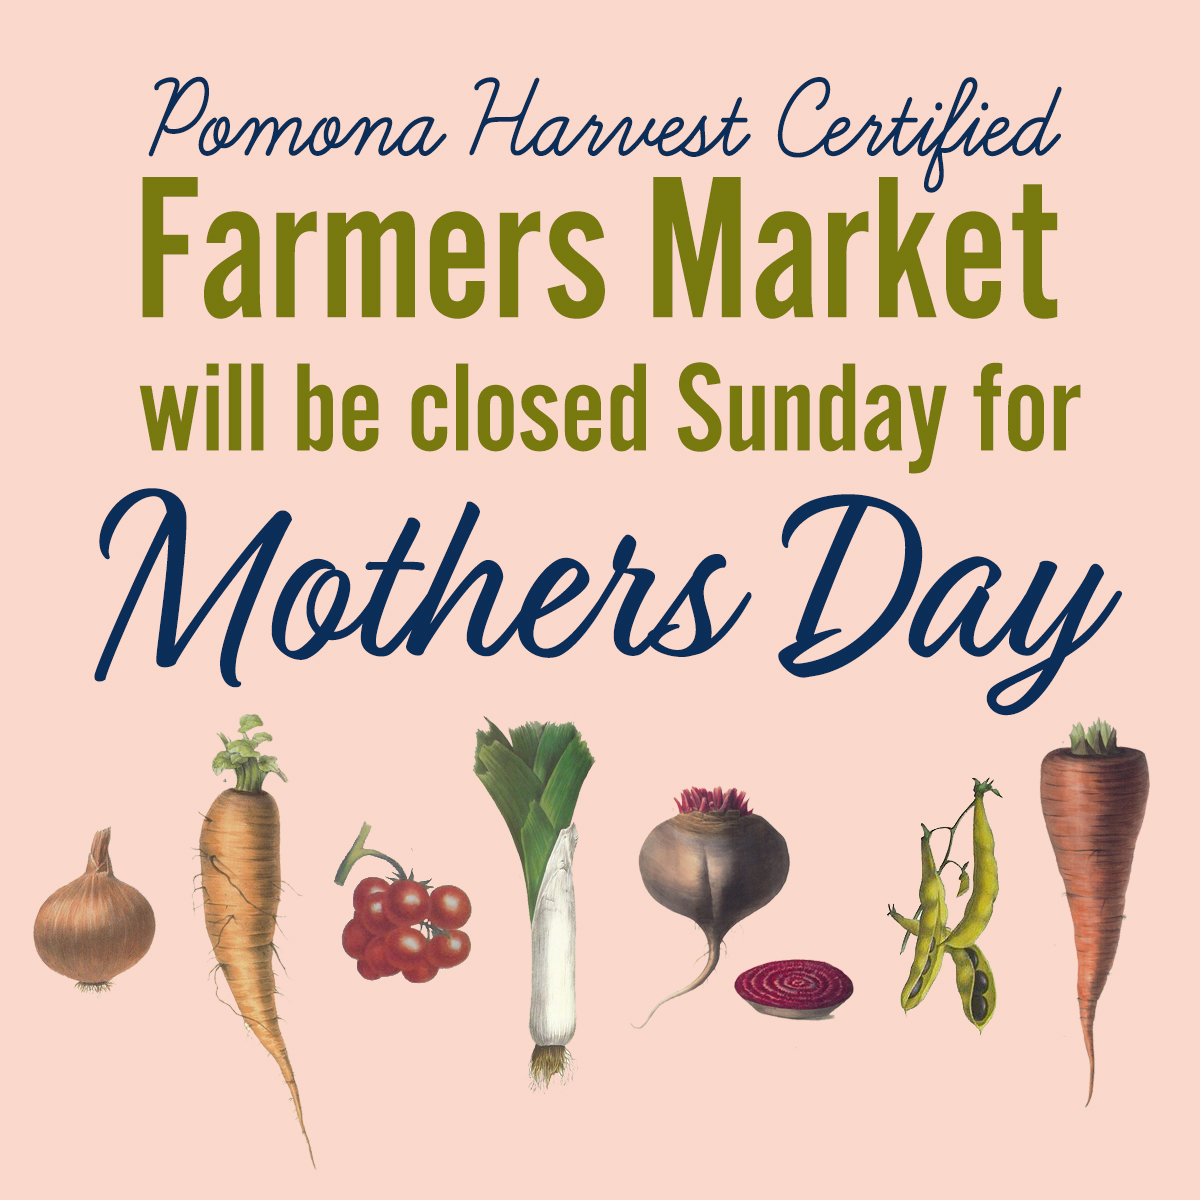 Closed this Sunday  - The Downtown Pomonafarmers market will be closed Sunday for Mothers Day. Hope to see you the following Sunday May 20. Have a wonderful Sunday and Happy Mothers Day to all you Moms out there.